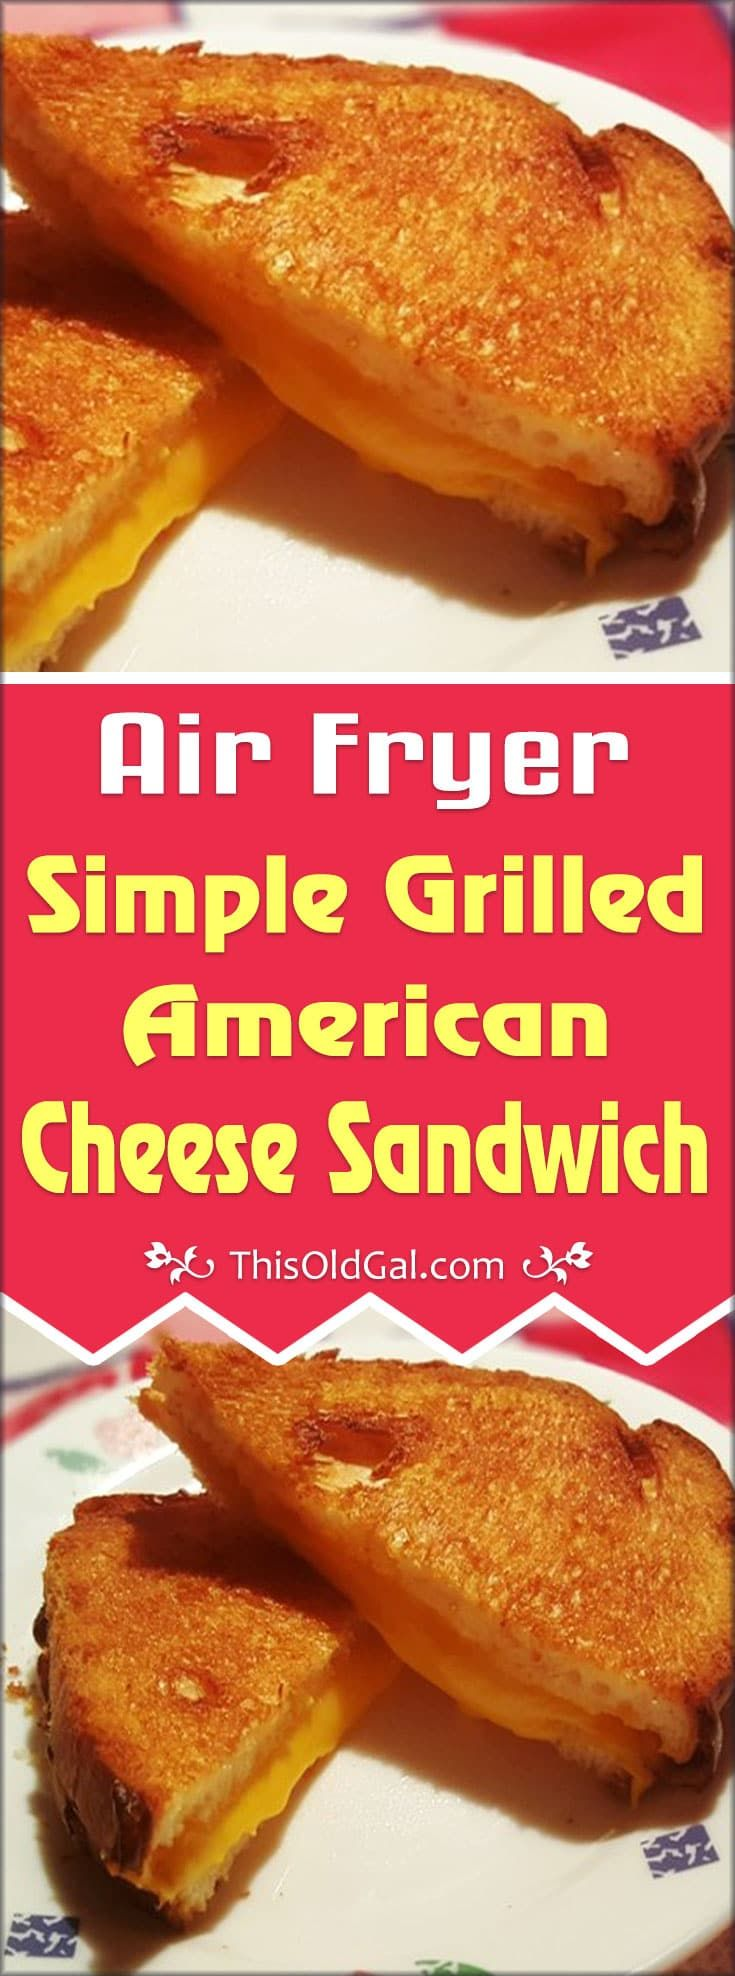 This Air Fryer Simple Grilled American Cheese Sandwich is